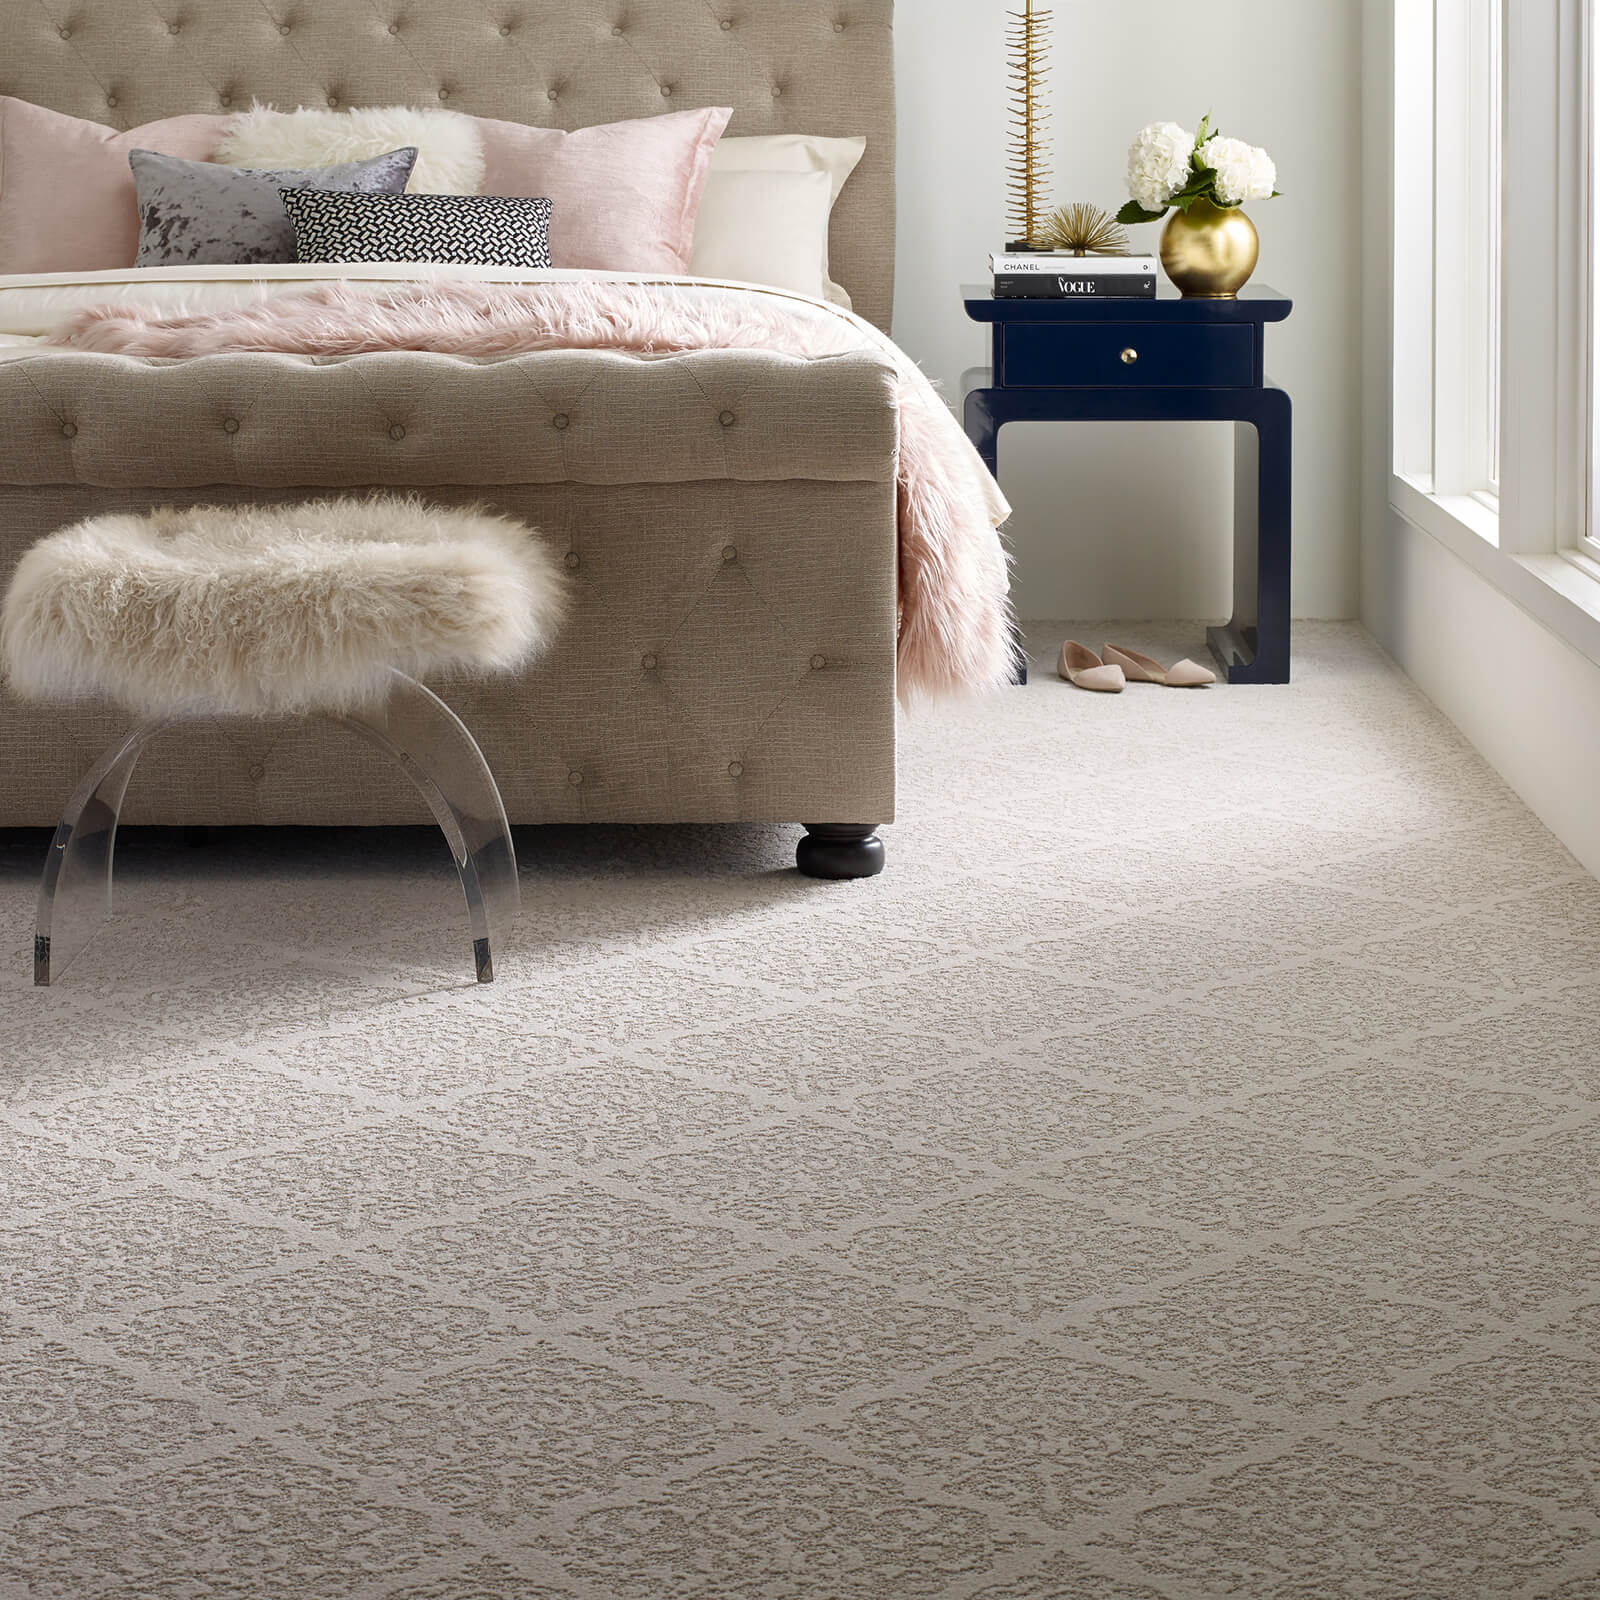 Bedroom Carpet | We'll Floor You